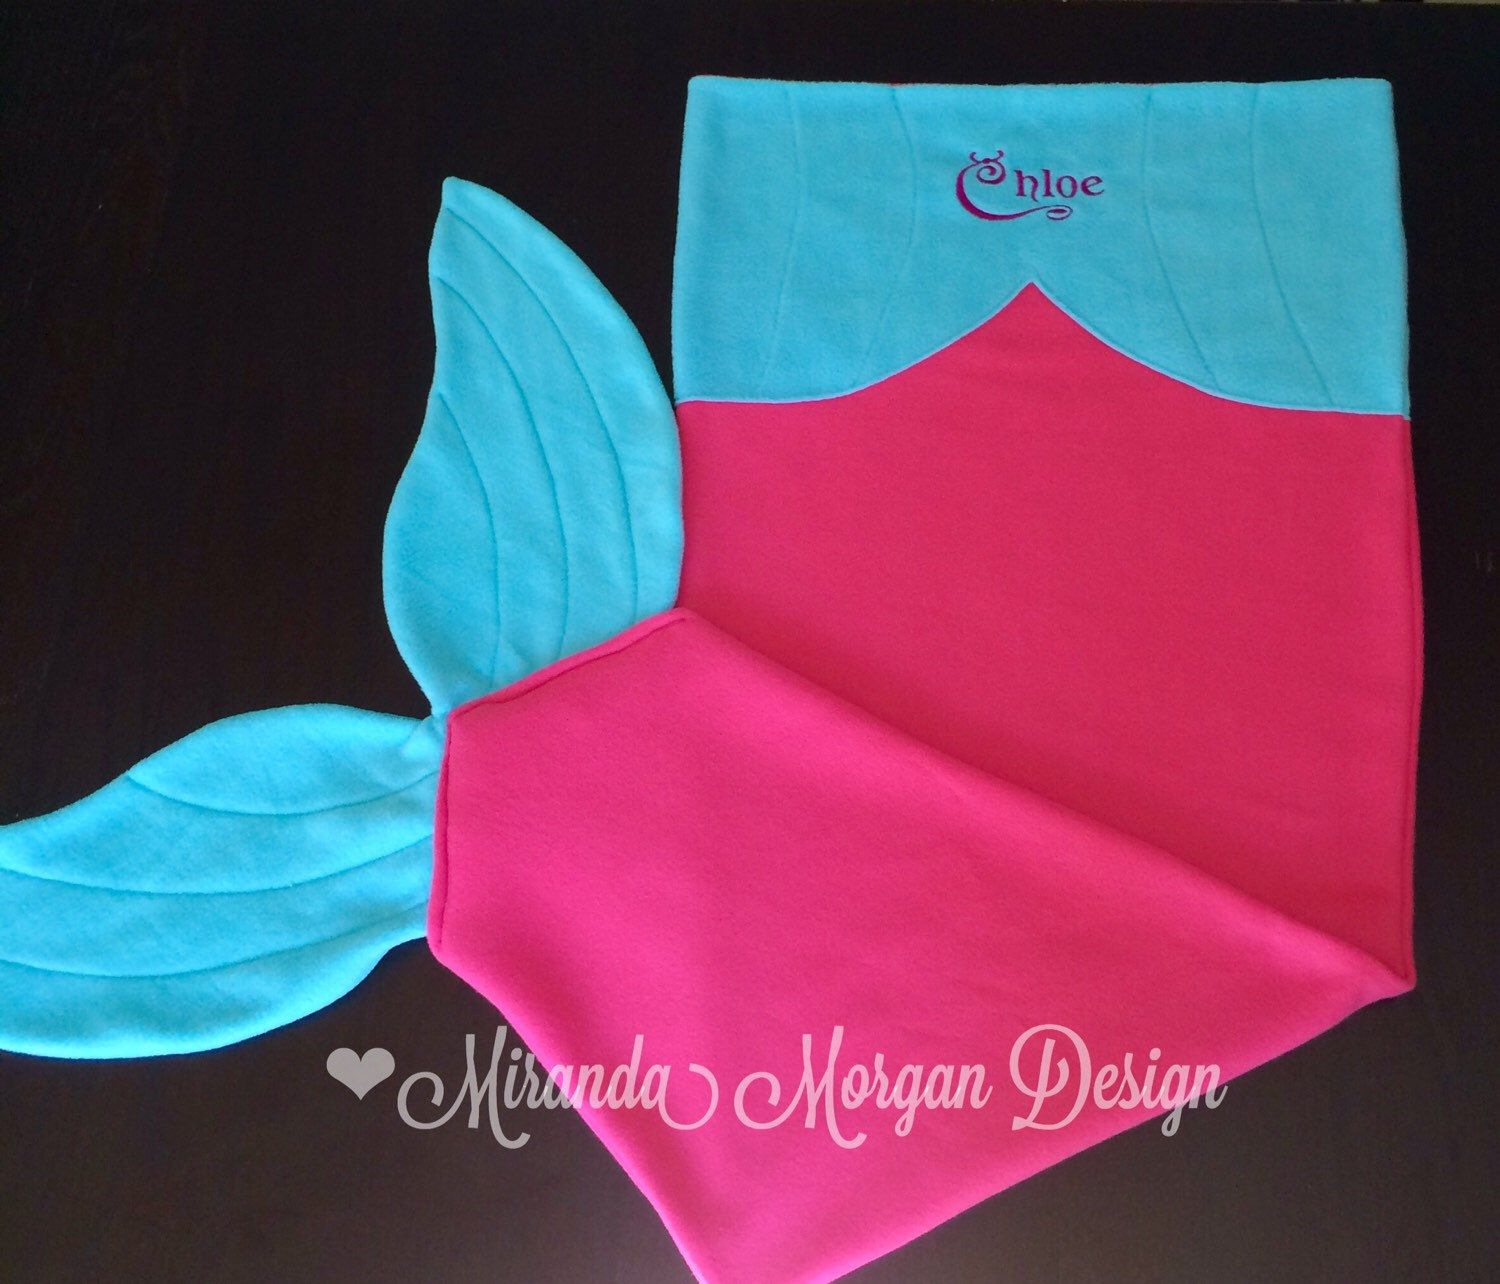 Mermaid Tail Blanket - Kids Customizable Mermaid Tail Blanket - Wearable Mermaid Tail / Fleece Mermaid Tail Blanket by MirandaMorganDesign on Etsy https://www.etsy.com/listing/244022450/kids-personalized-mermaid-tail-blanket